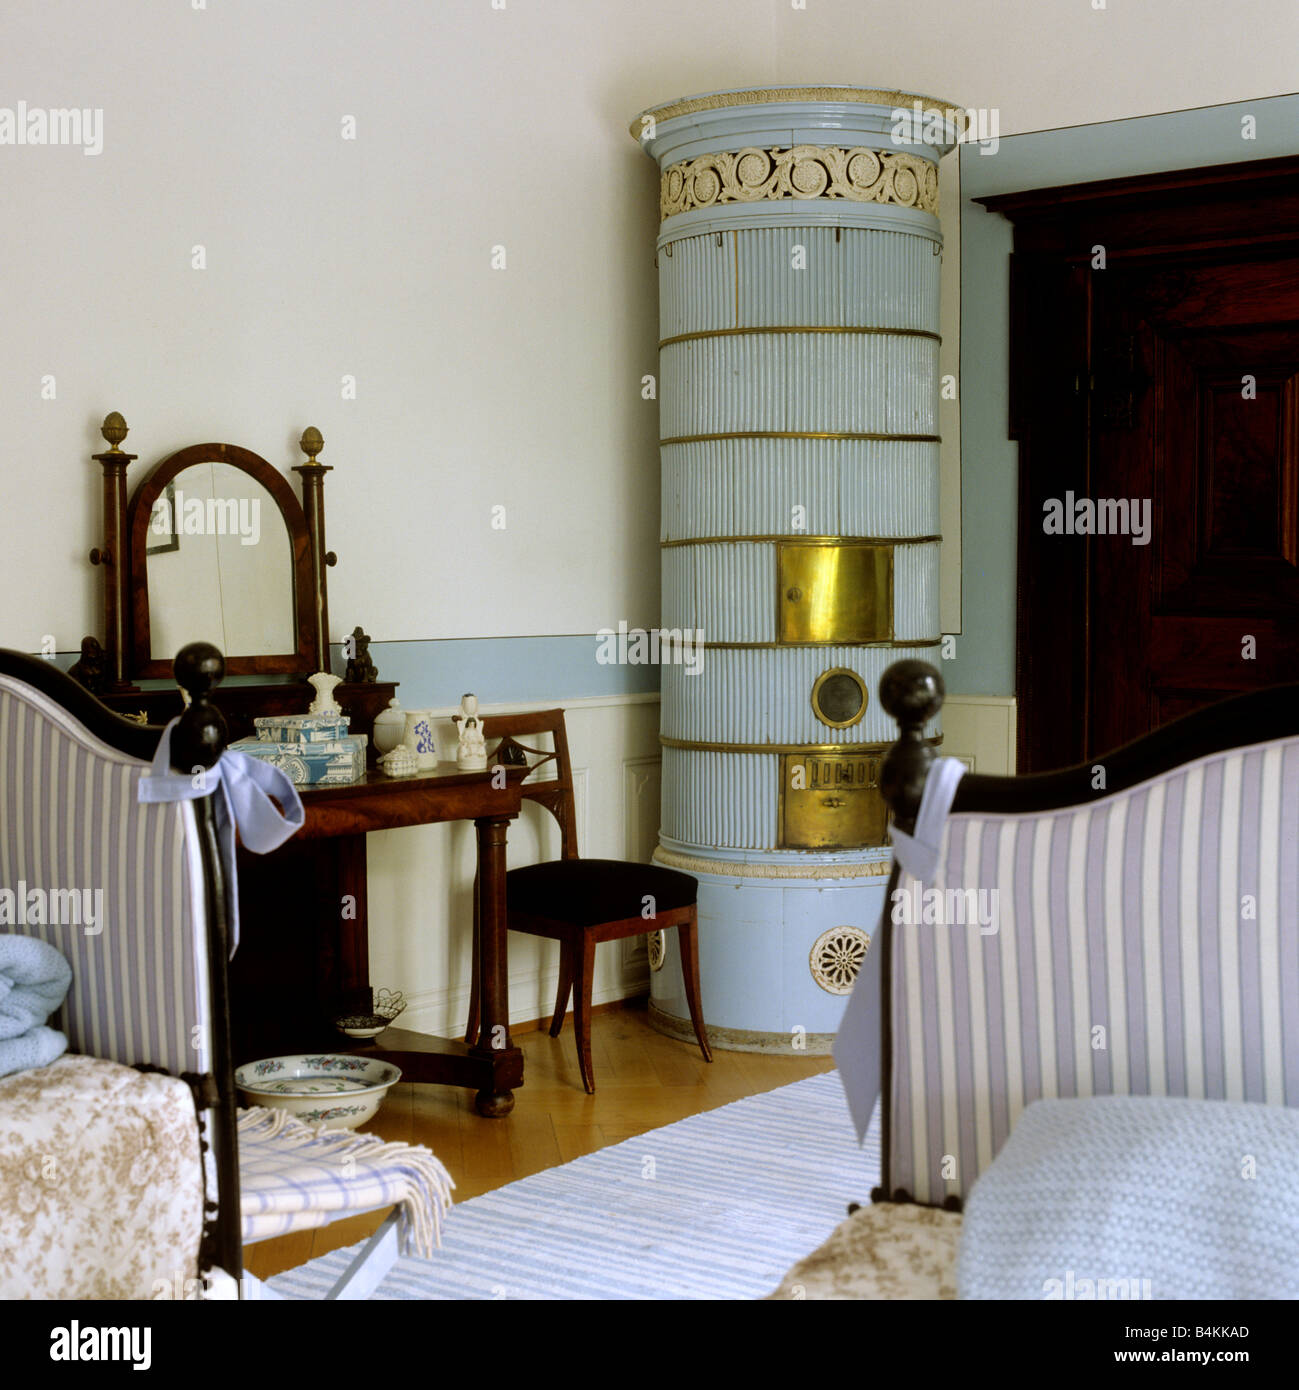 Period Bedroom Furniture 19th Century Bedroom With Period Furniture And Ceramic Stove In